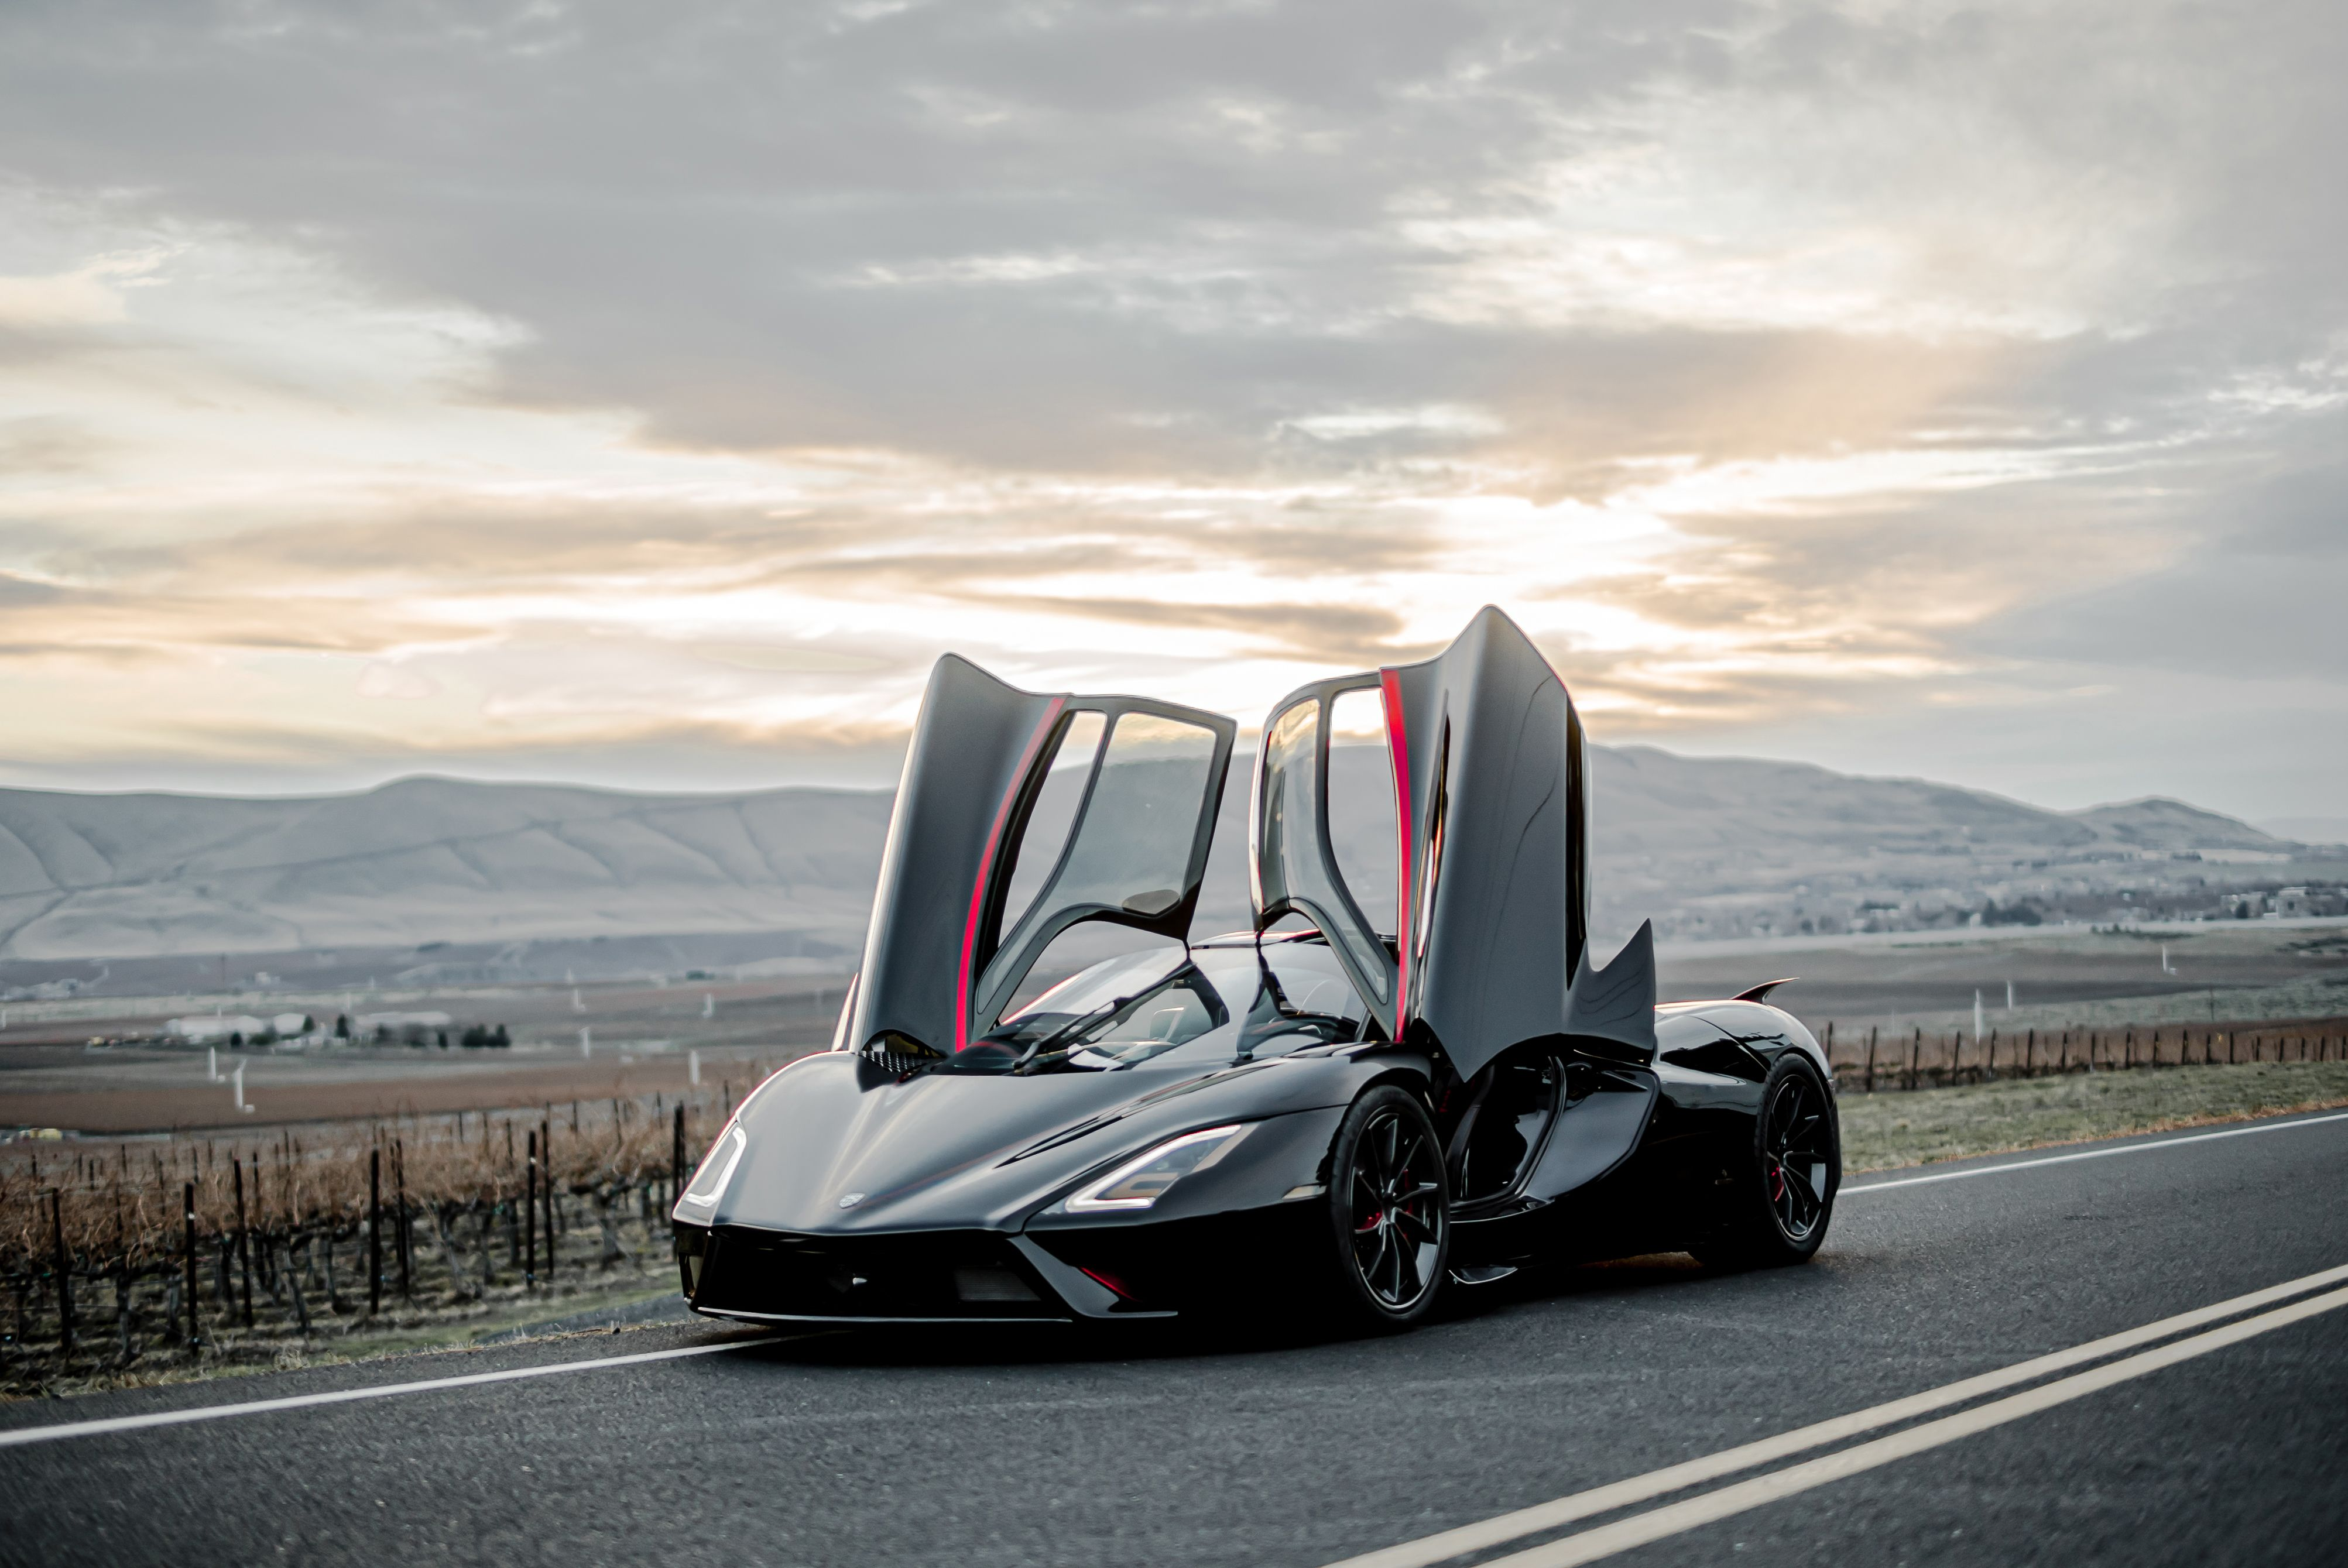 Pin By Carid On Supercars In 2020 Super Cars Tuatara Automotive Design